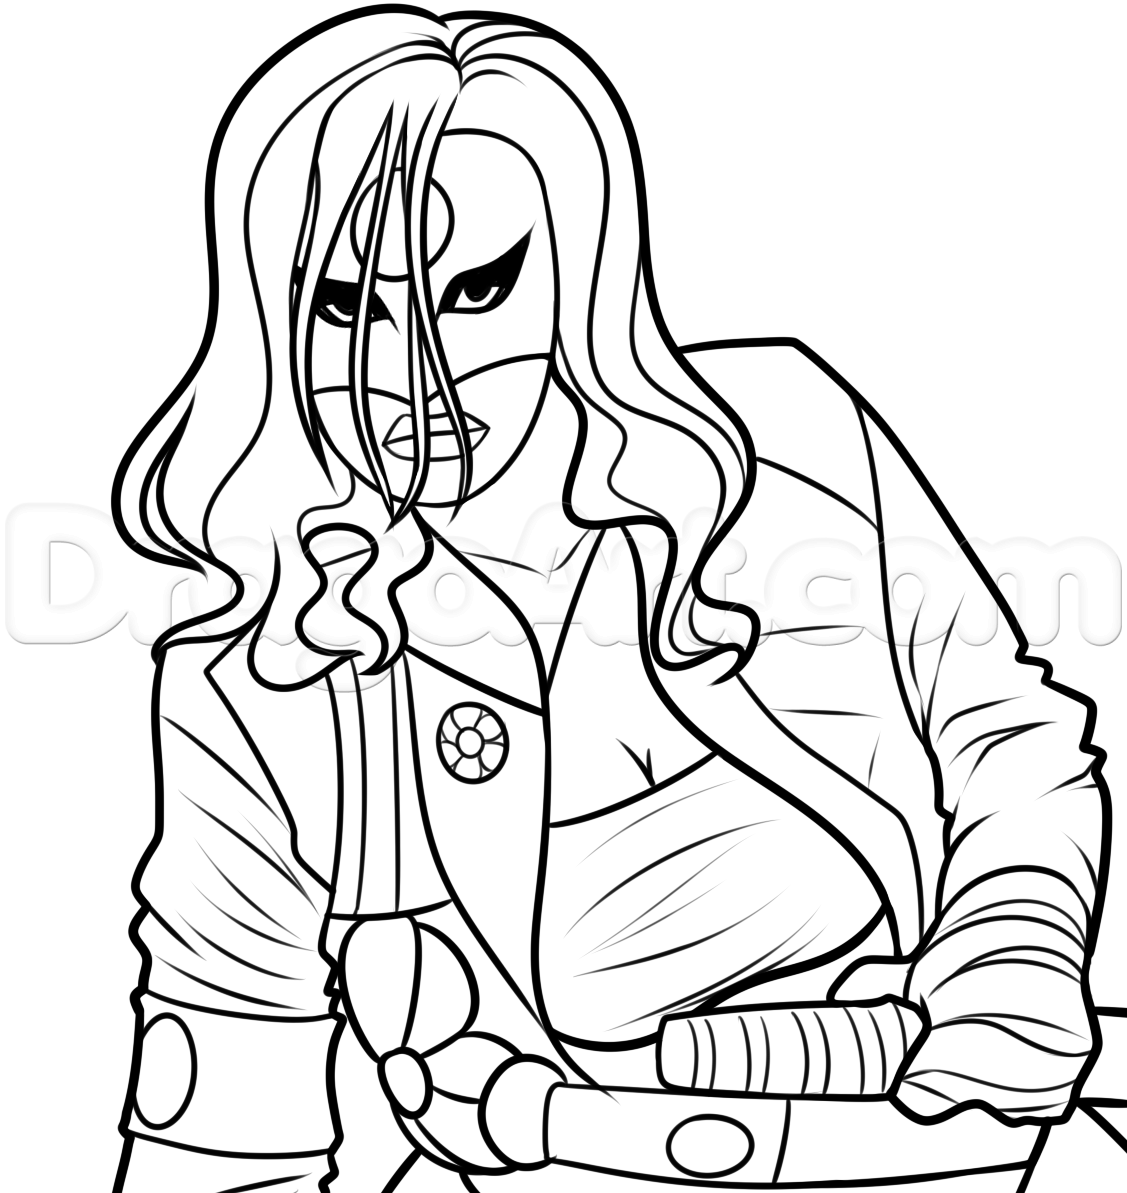 1127x1193 Drawing Katana From Suicide Squad, Step By Step, Dc Comics, Comics